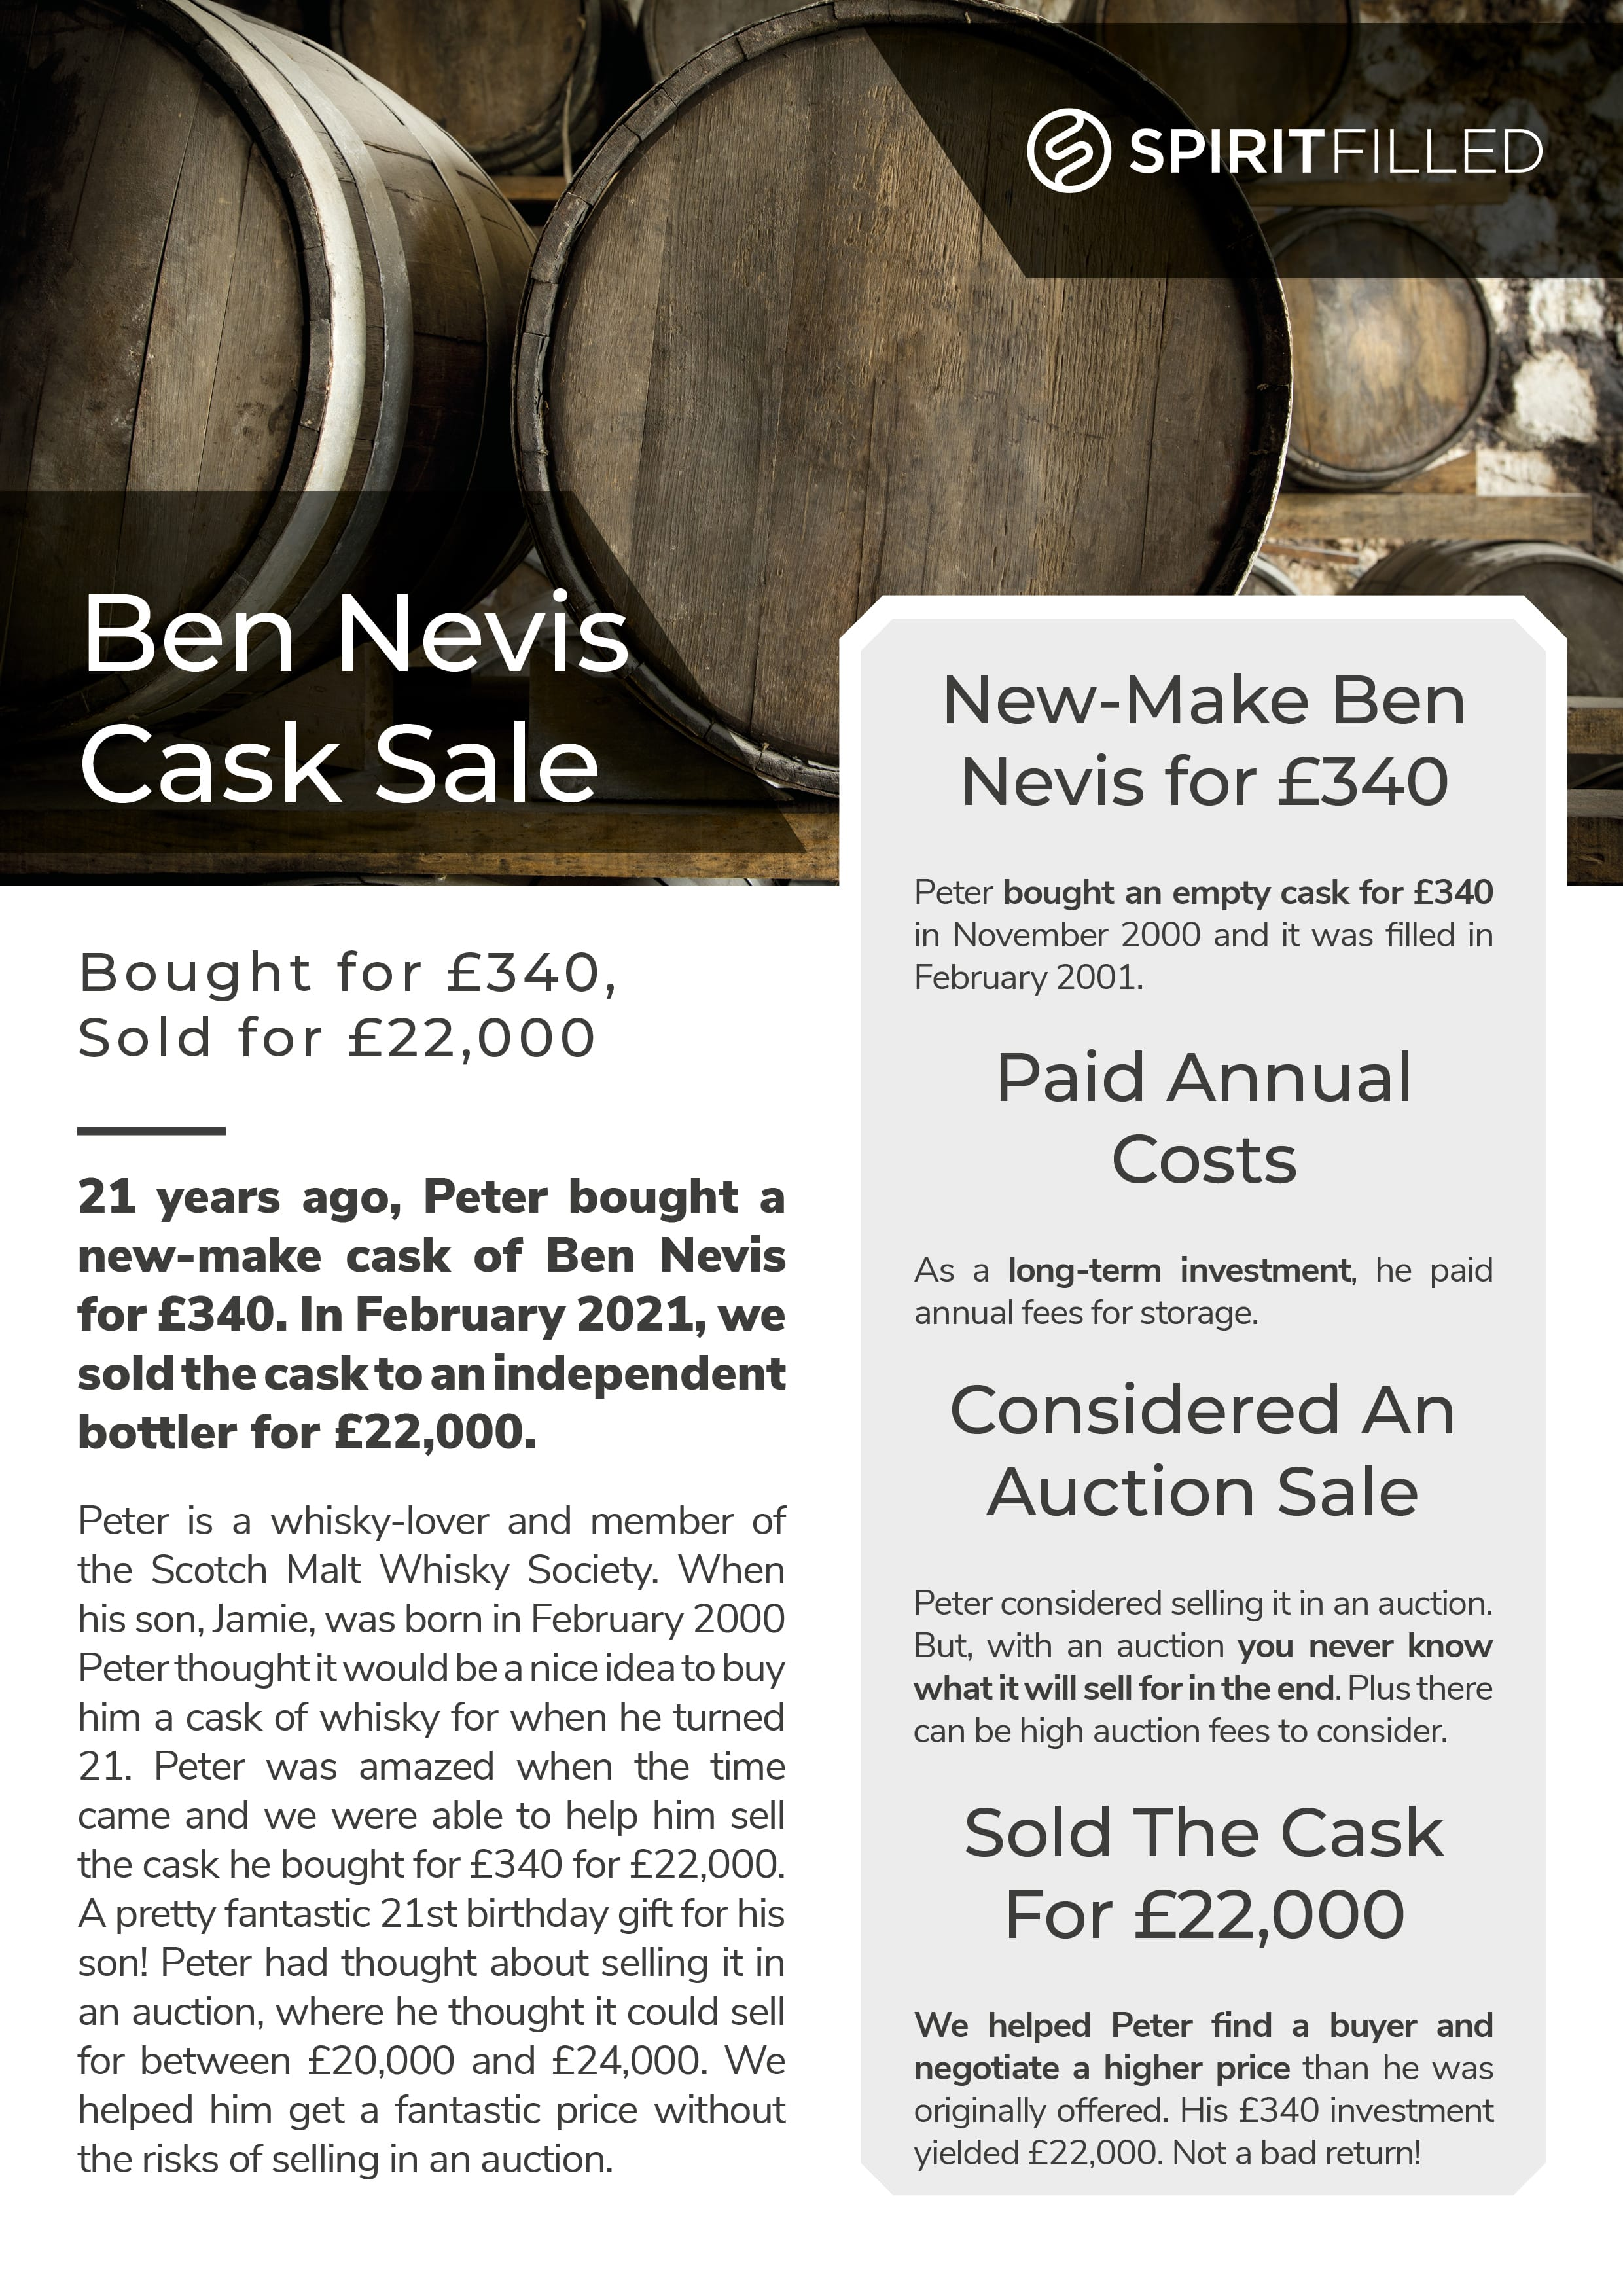 Whisky Cask Sold As An Investment Case Study from Spiritfilled